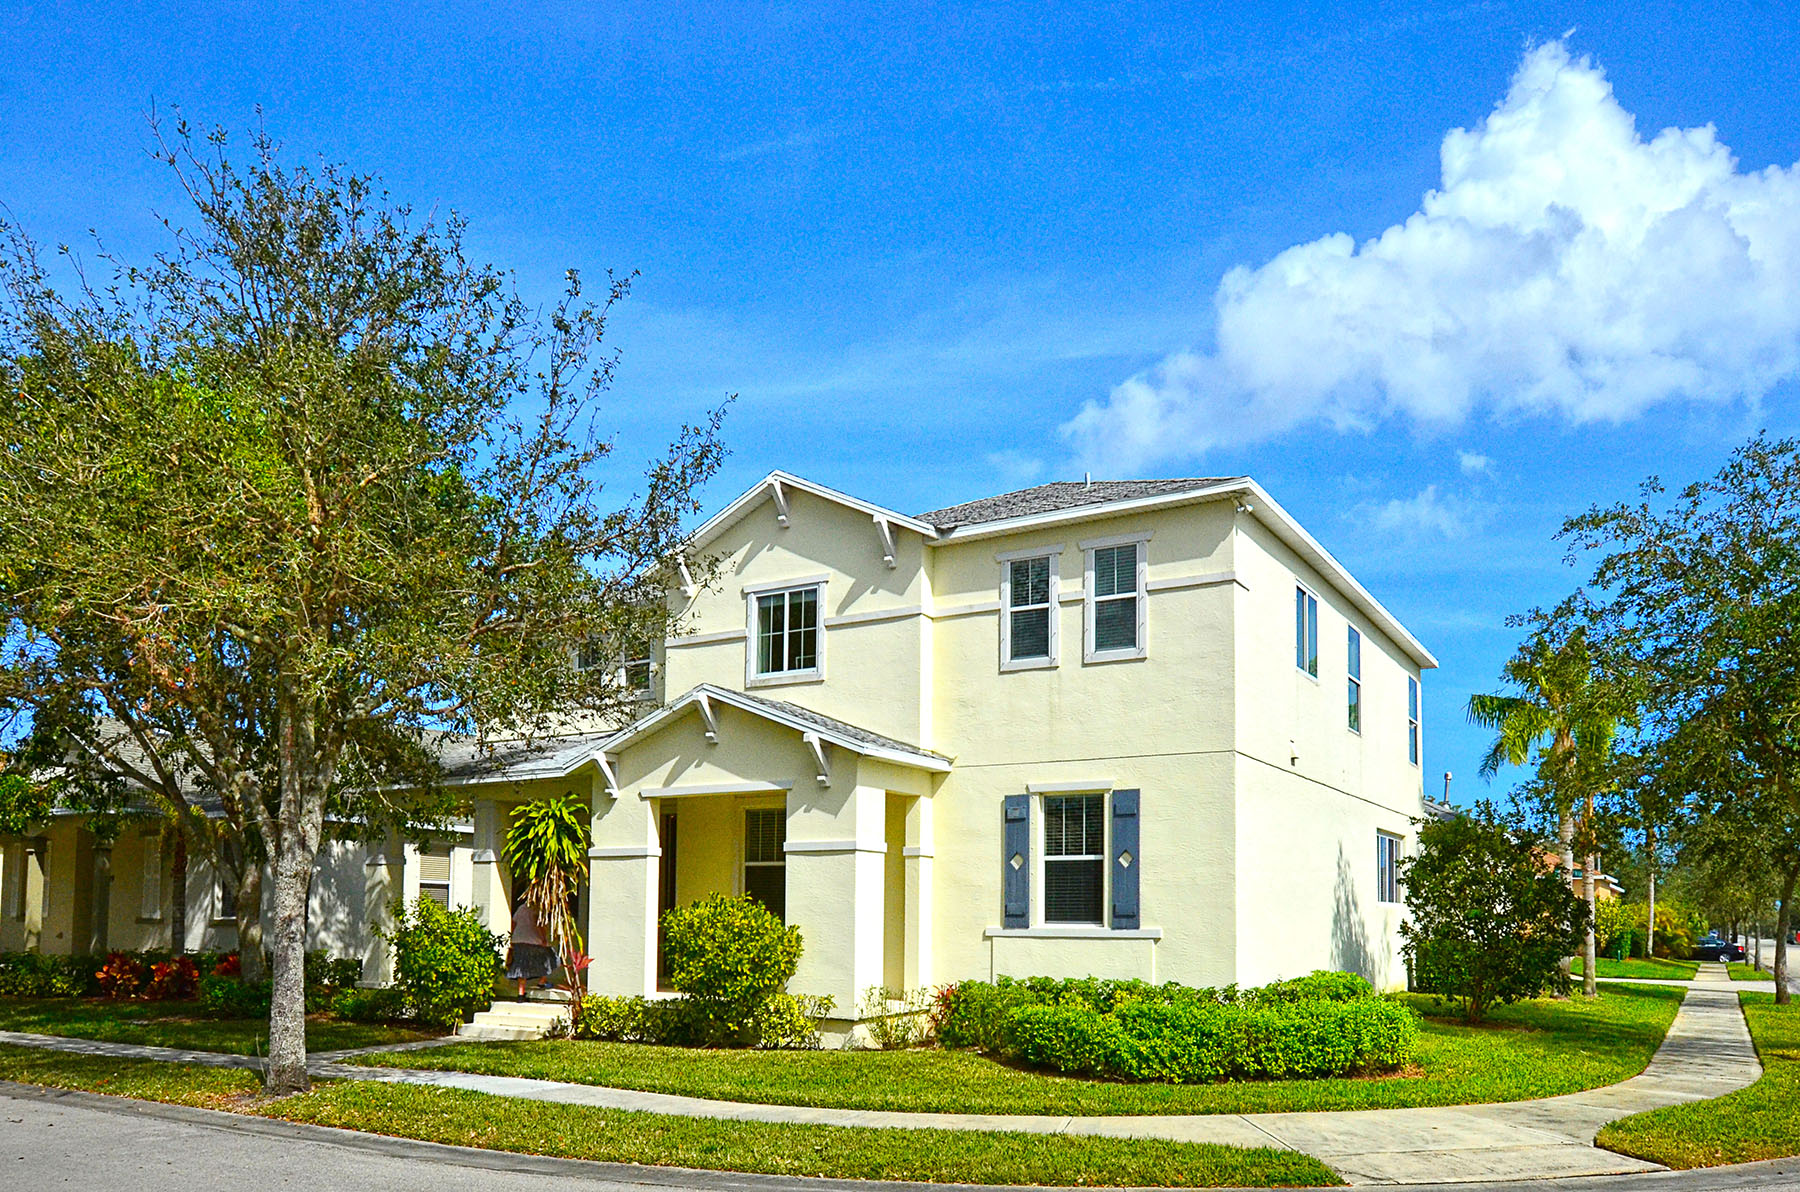 1271 Veranda Way Vero Beach, Fl. 32966